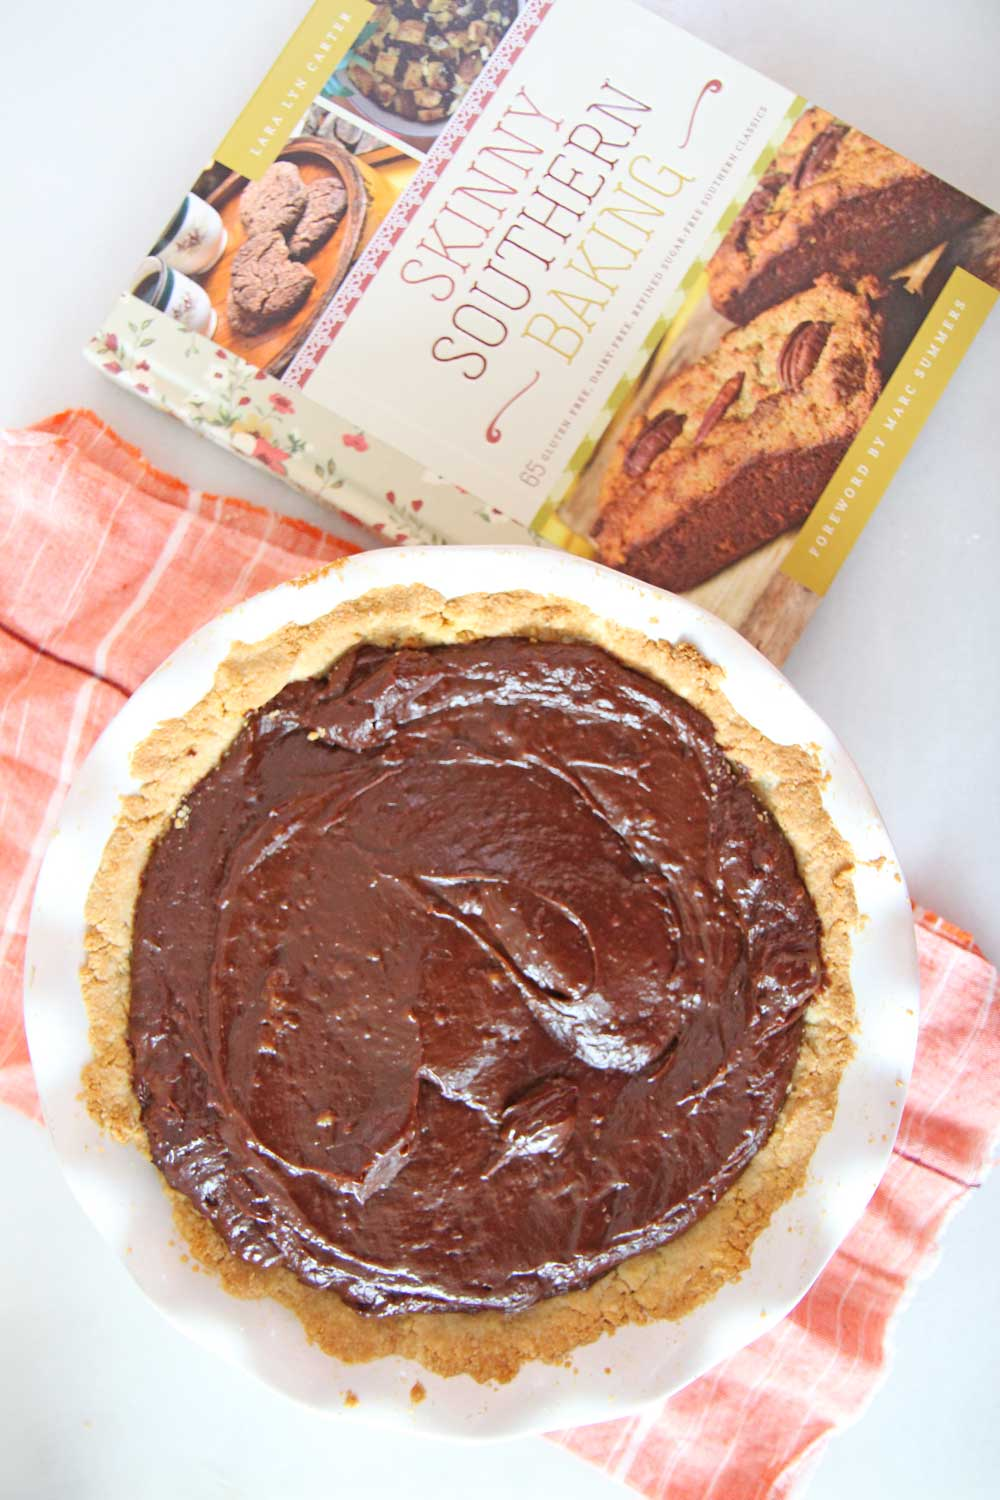 Death By Chocolate Pie (w/ Gluten Free Pie Crust) by Lara Lyn Carter. This is the best gluten free pie I have ever made. Its the easiest pie, all chocolate, and freezes easily for leftovers. Happy Gluten Baking!  www.ChopHapoy.com #gluenfreebaking #glutenfreepie